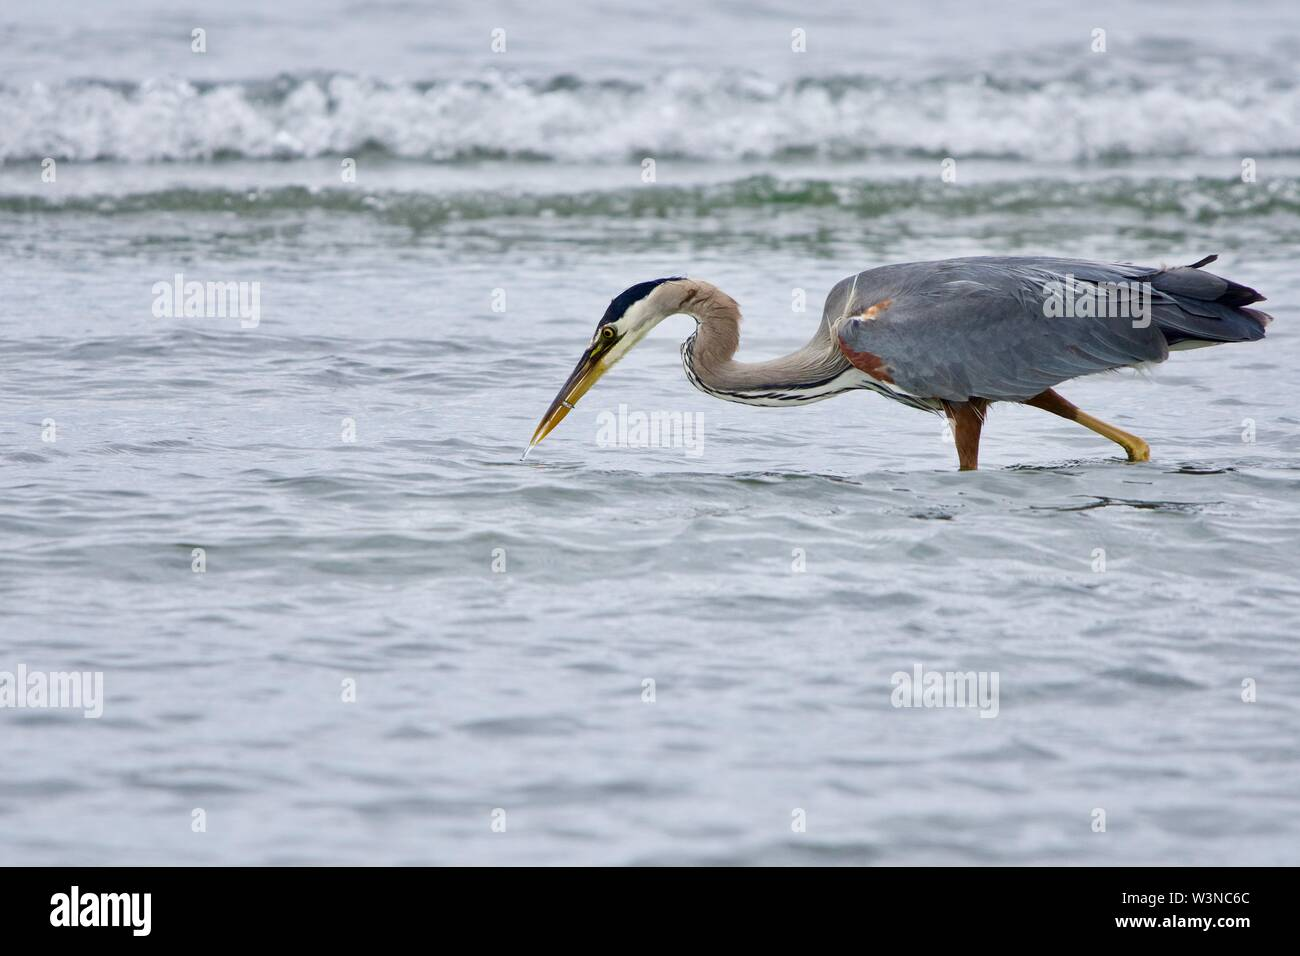 Heron catches a needle fish in the shallows near beach at Witty's Lagoon, Vancouver Island, British Columbia. - Stock Image